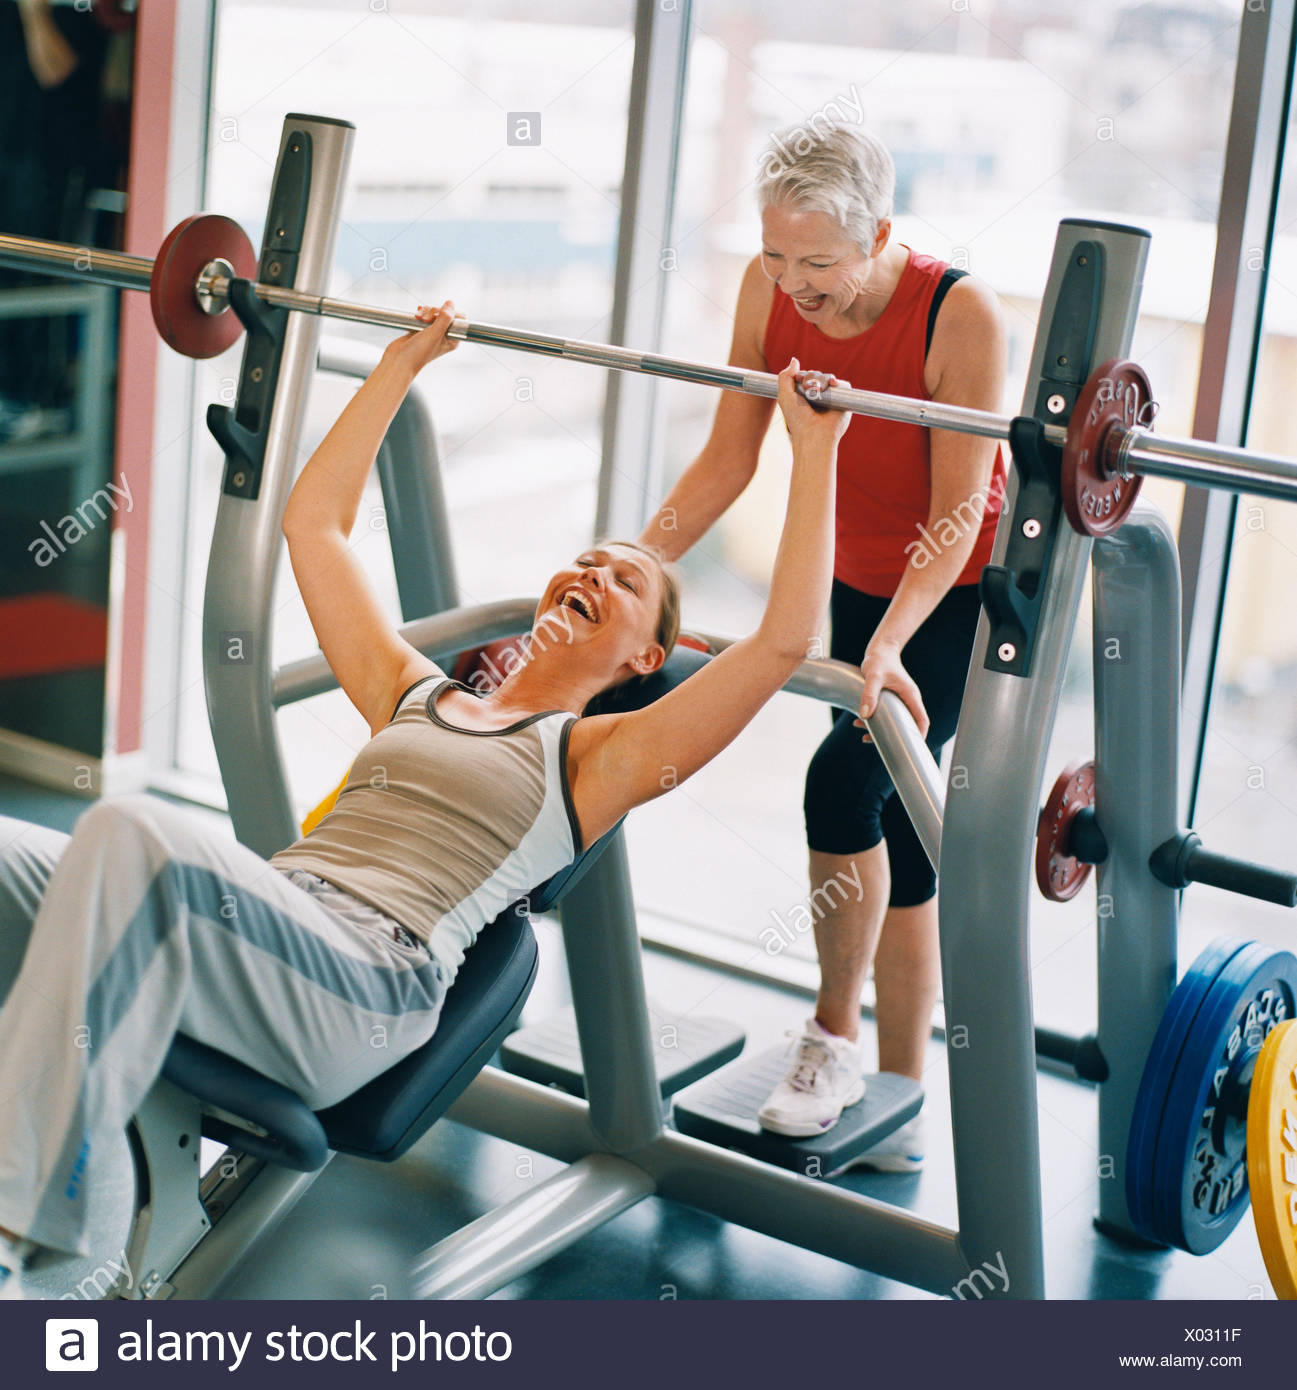 20-24 years 70-74 years 75-79 years activity adults only athlete bodybuilding color image elderly woman exercising feelings - Stock Image